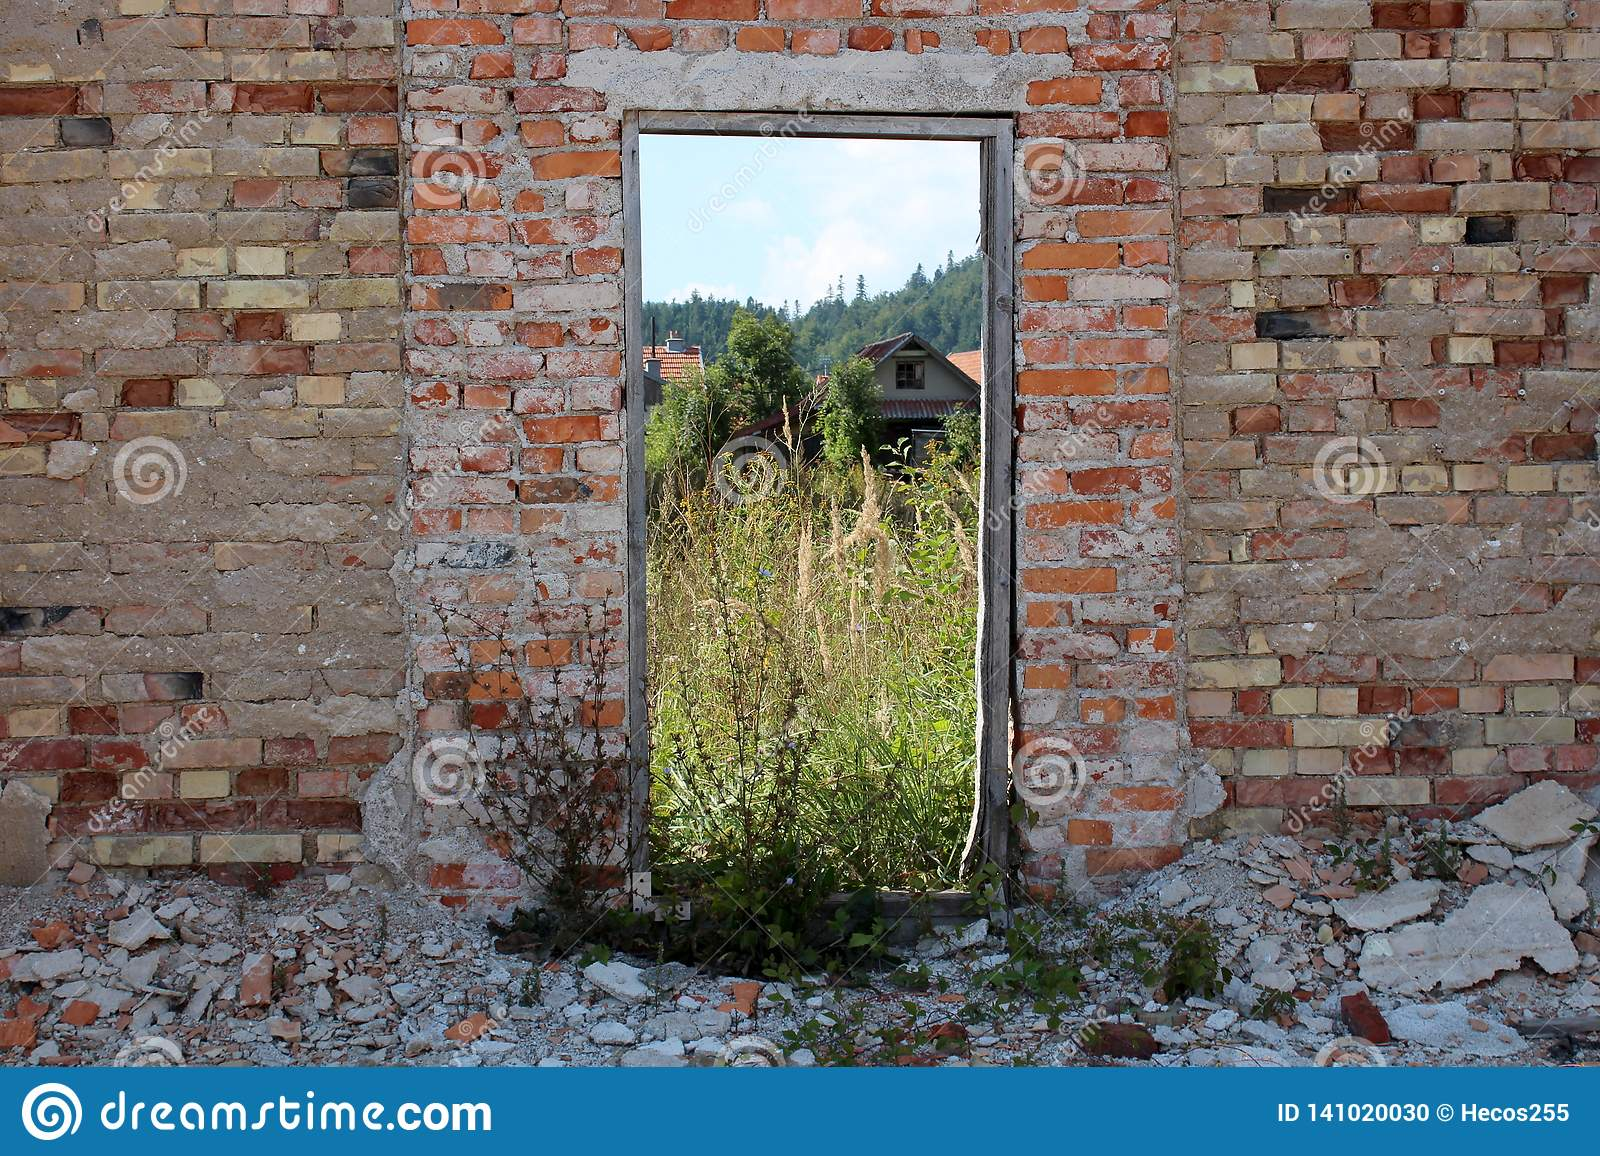 Red brick wall of house ruins with wooden frame instead of wooden doors now serving as picture frame for houses and tall grass